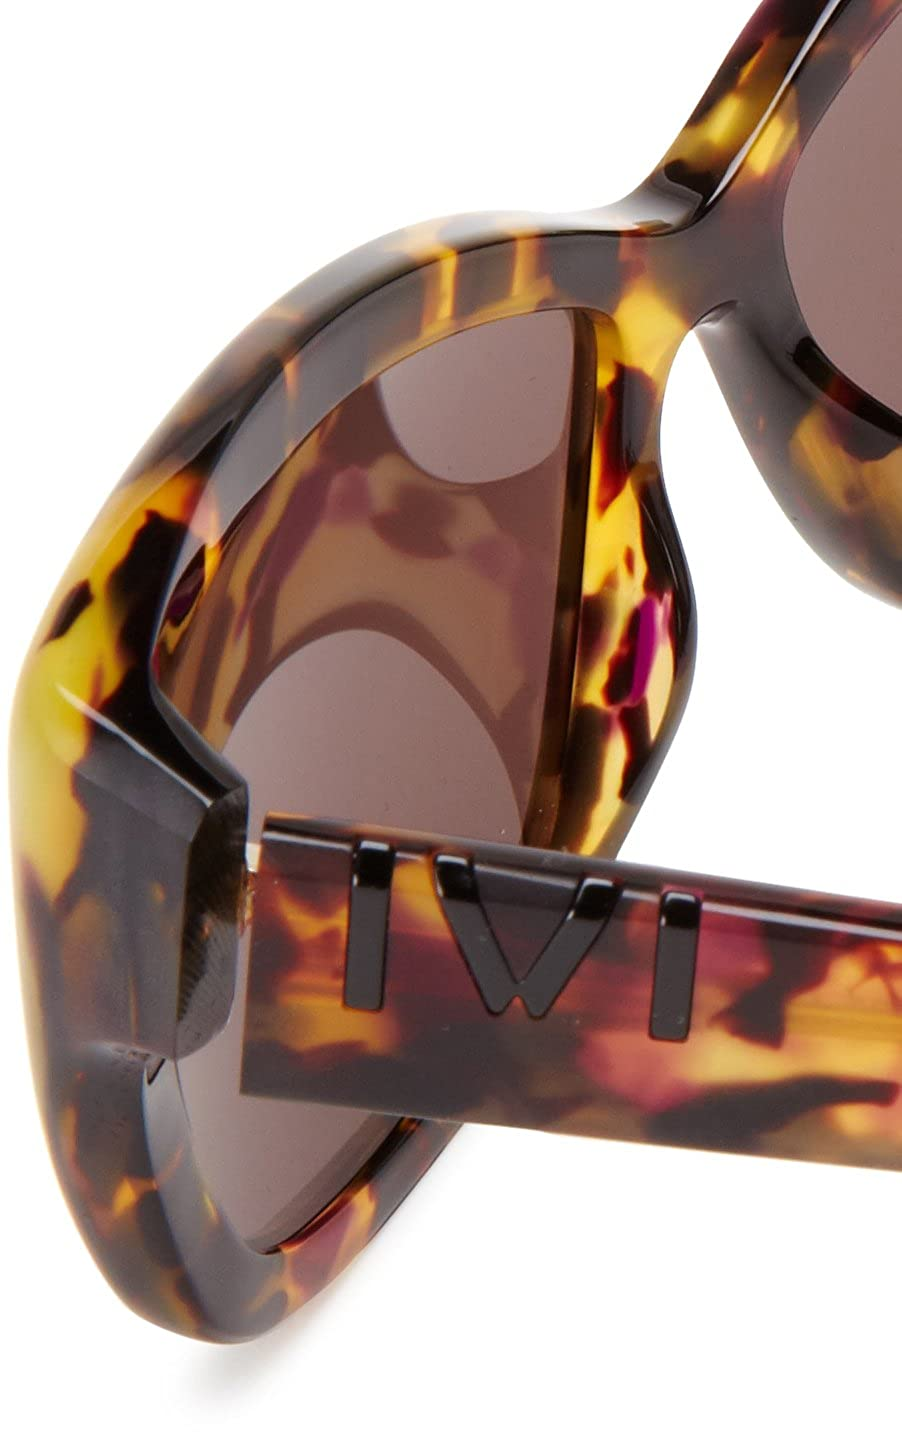 b276910190f3 IVI Beverly 06728-905 Butterfly Sunglasses,Vintage Tortoise & Black,59 mm:  Amazon.in: Clothing & Accessories